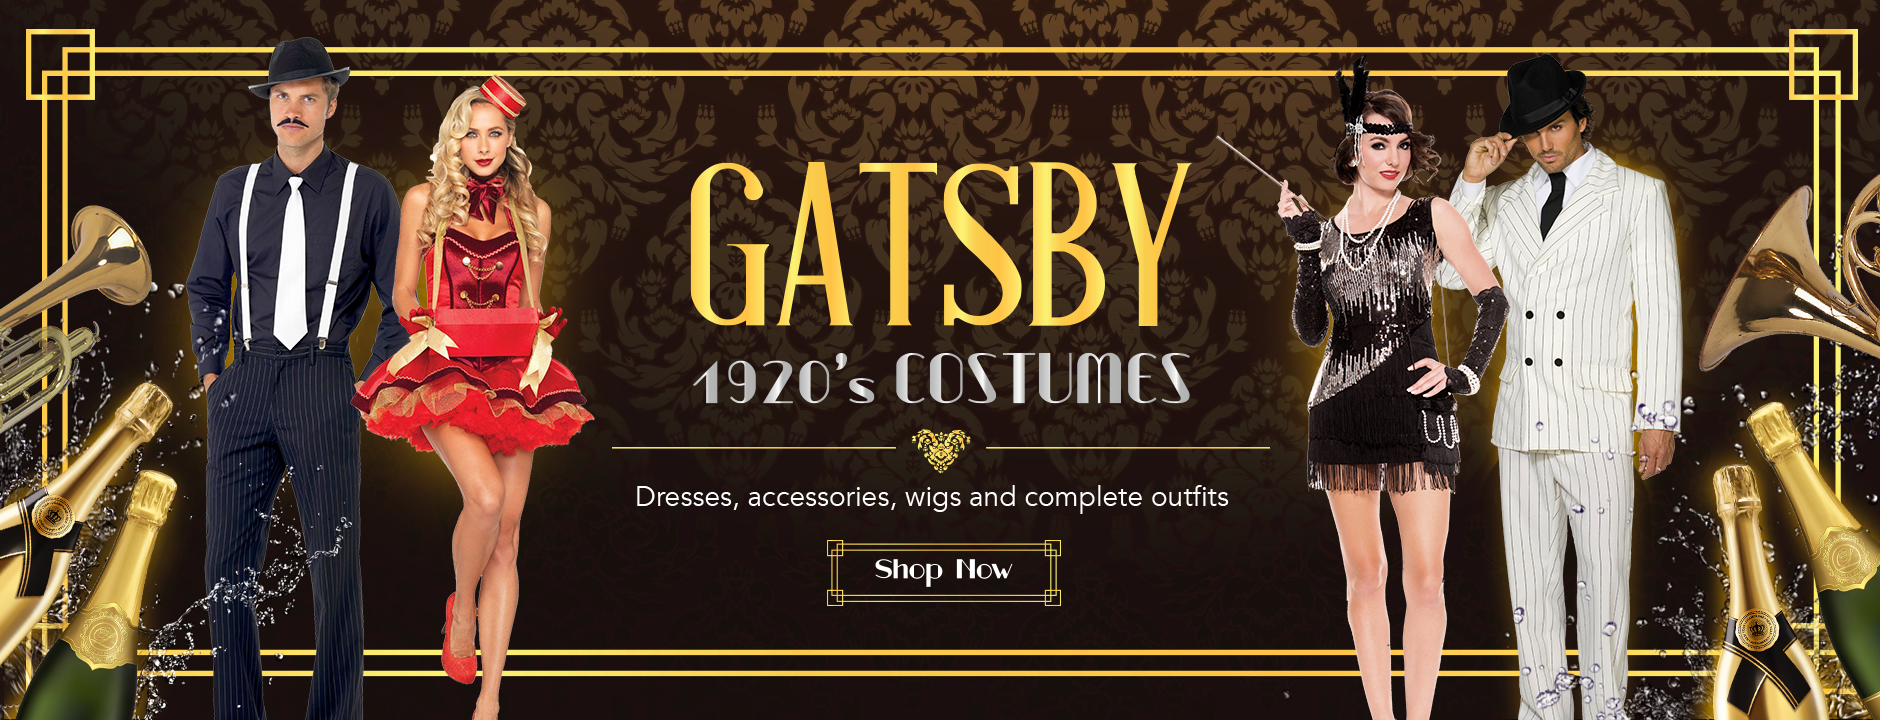 1920s Costumes Brisbane Hire Buy Womens Men